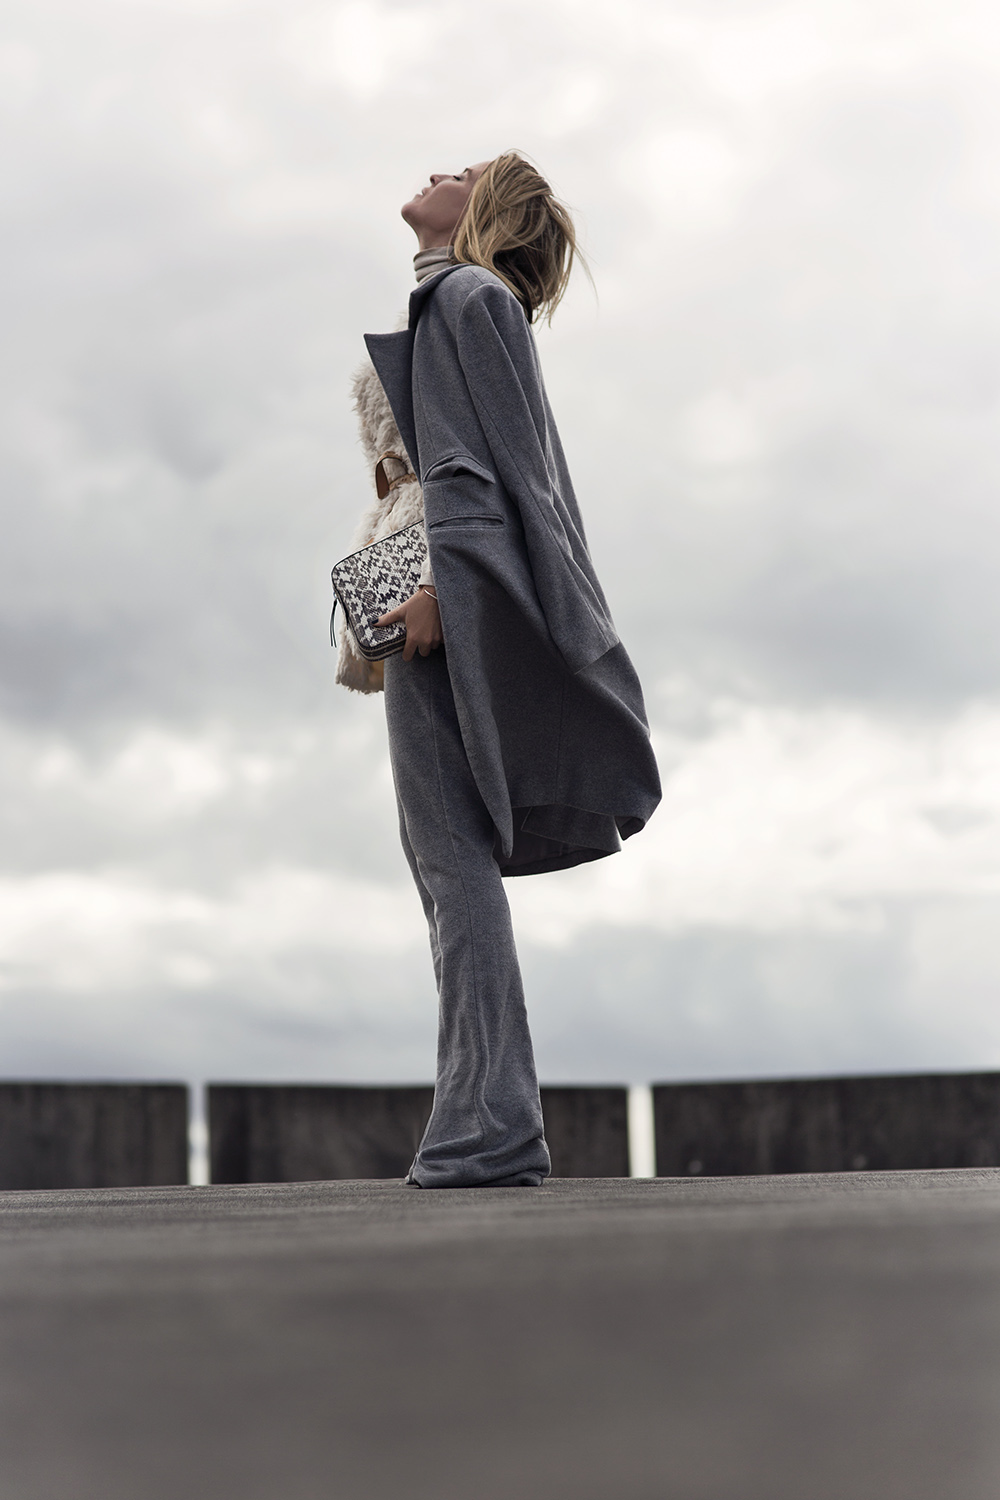 A matching coat and trousers combo will always afford you with an elegant and collected style. Mandy Shadforth looks ultra suave in this double grey outfit, paired with an Aztec style printed clutch for added glam. Coat/Trousers: Anna Quan, Sweater: Rachel Pally.